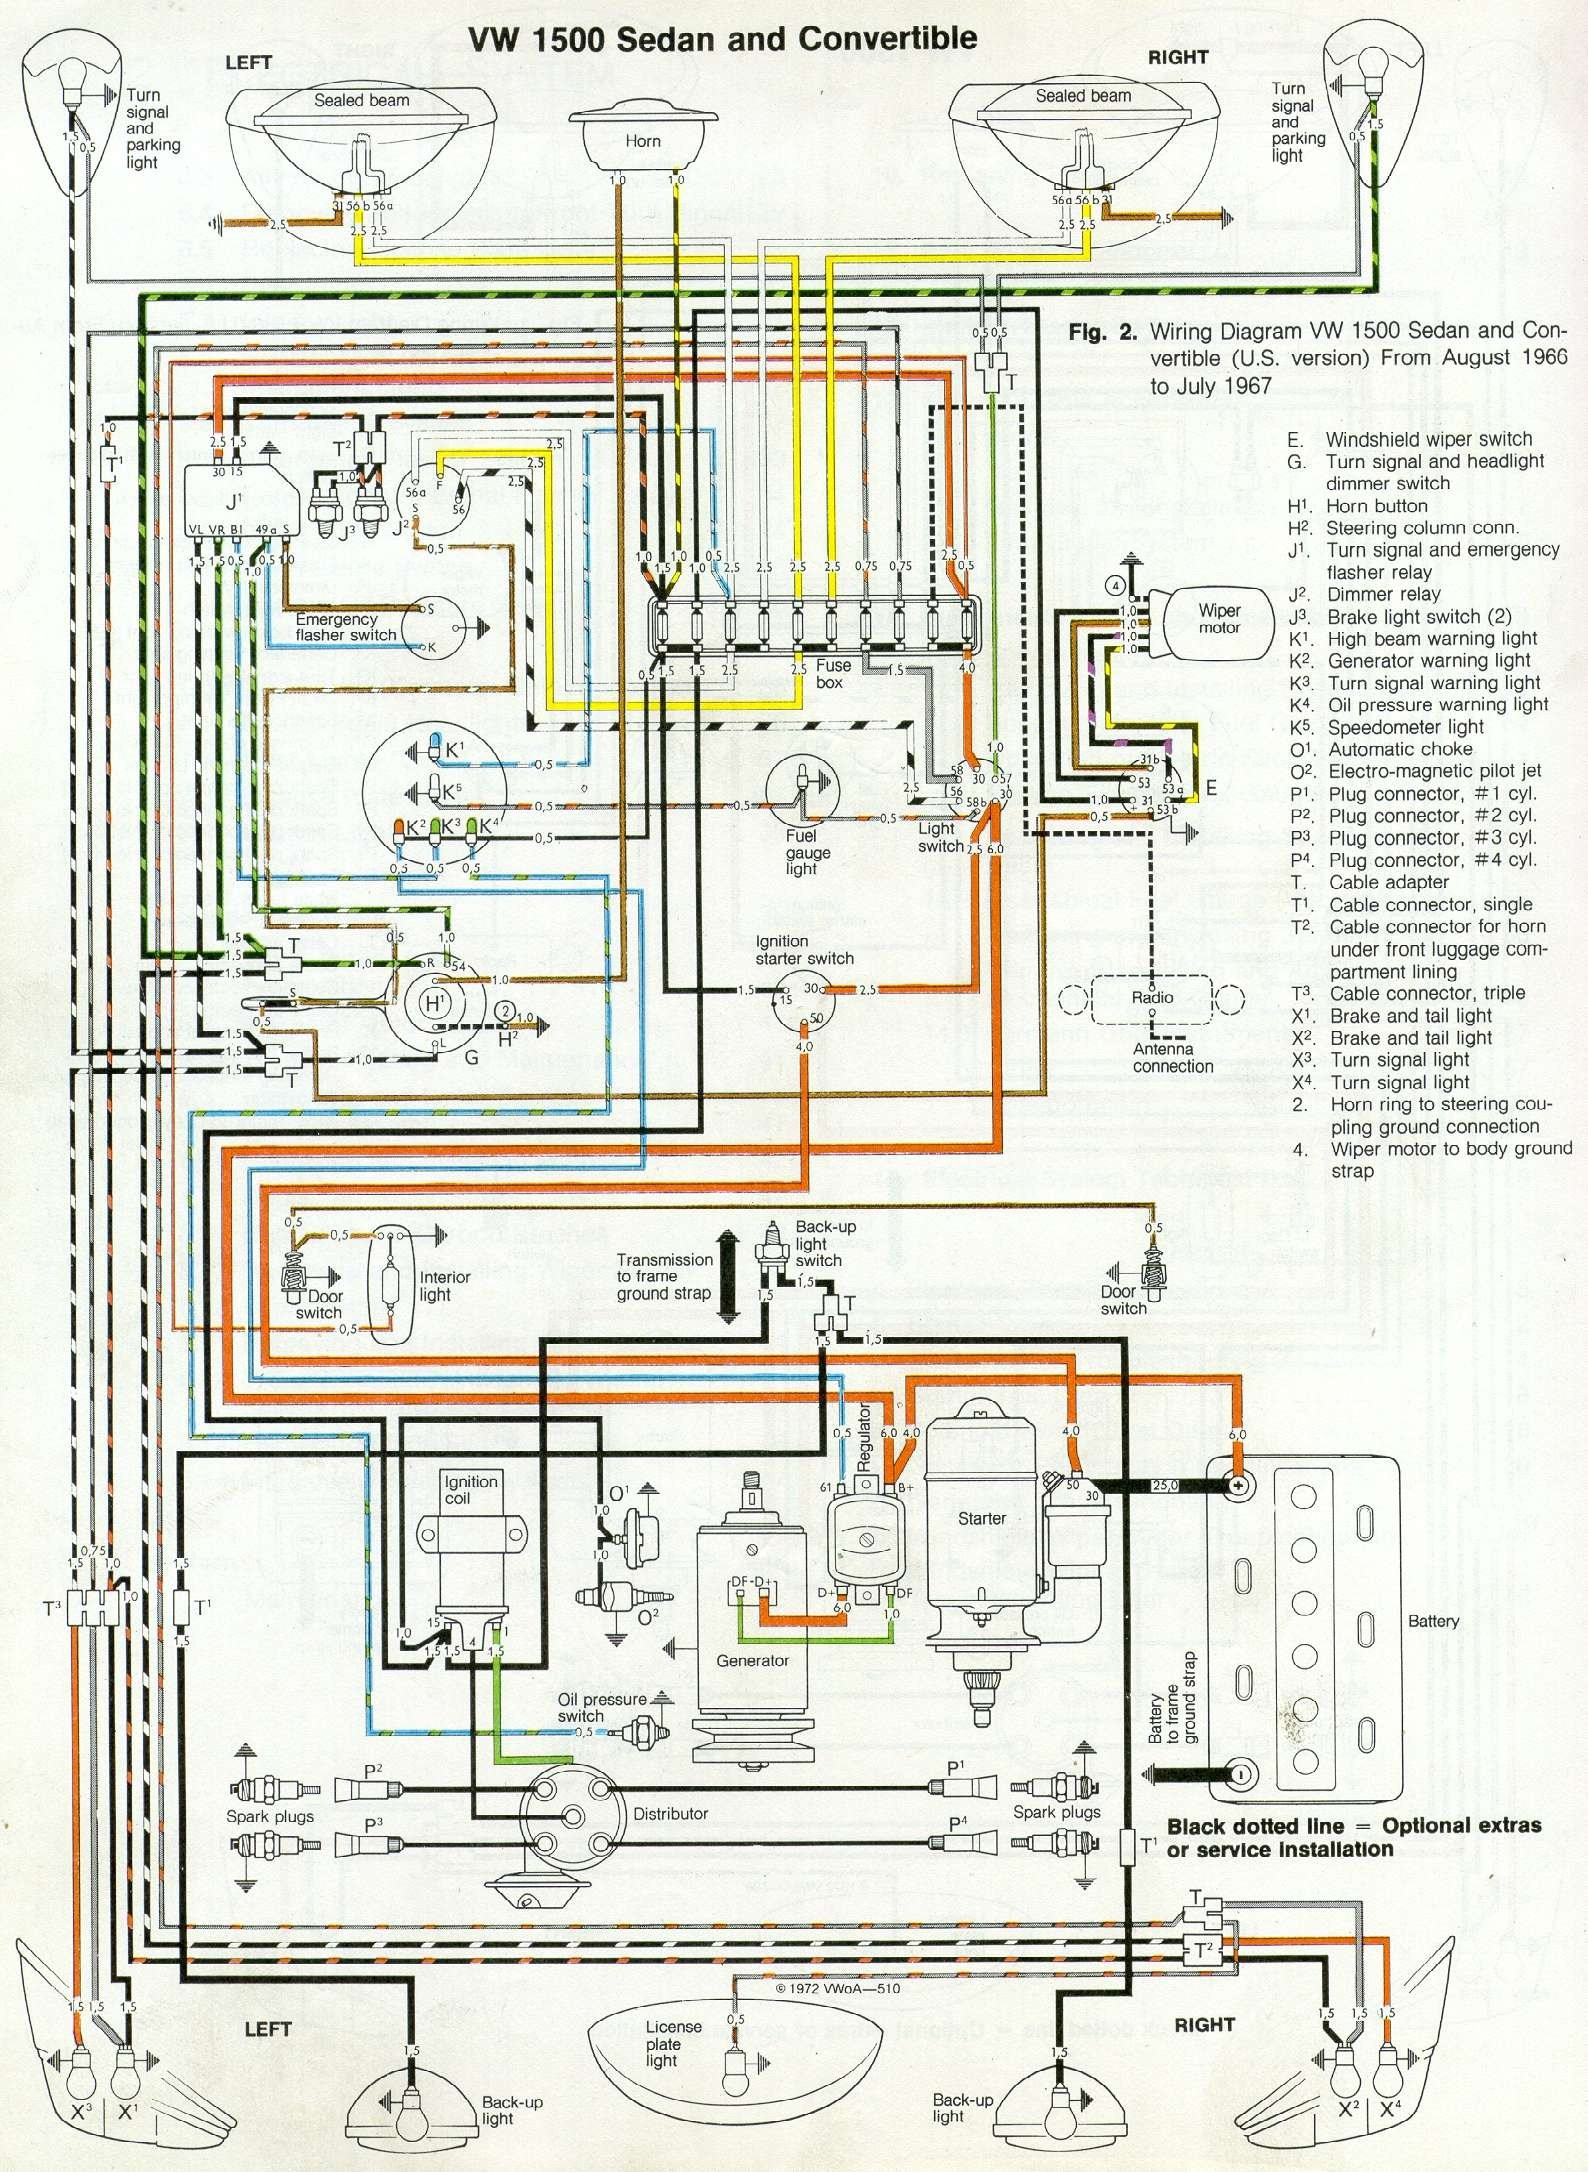 VW Beetle Wiring Digram vw beetle diagram vw beetle timing belt marks \u2022 wiring diagrams 1973 vw beetle fuse box diagram at crackthecode.co